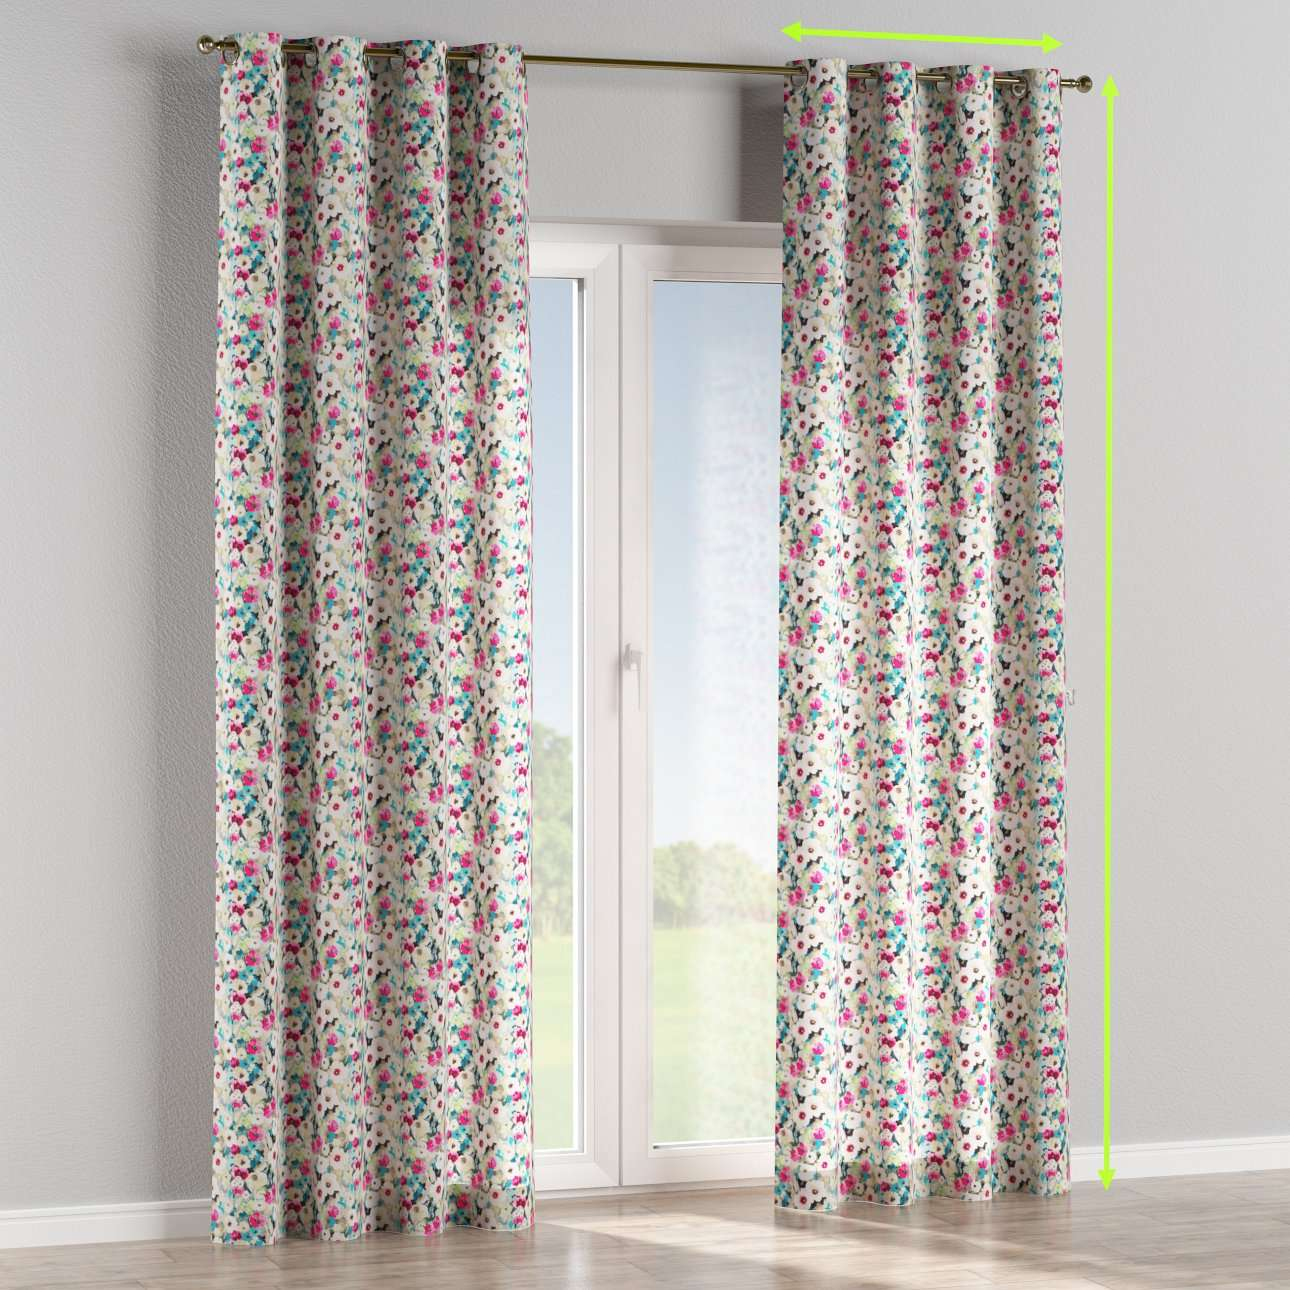 Eyelet curtains in collection Monet, fabric: 140-10